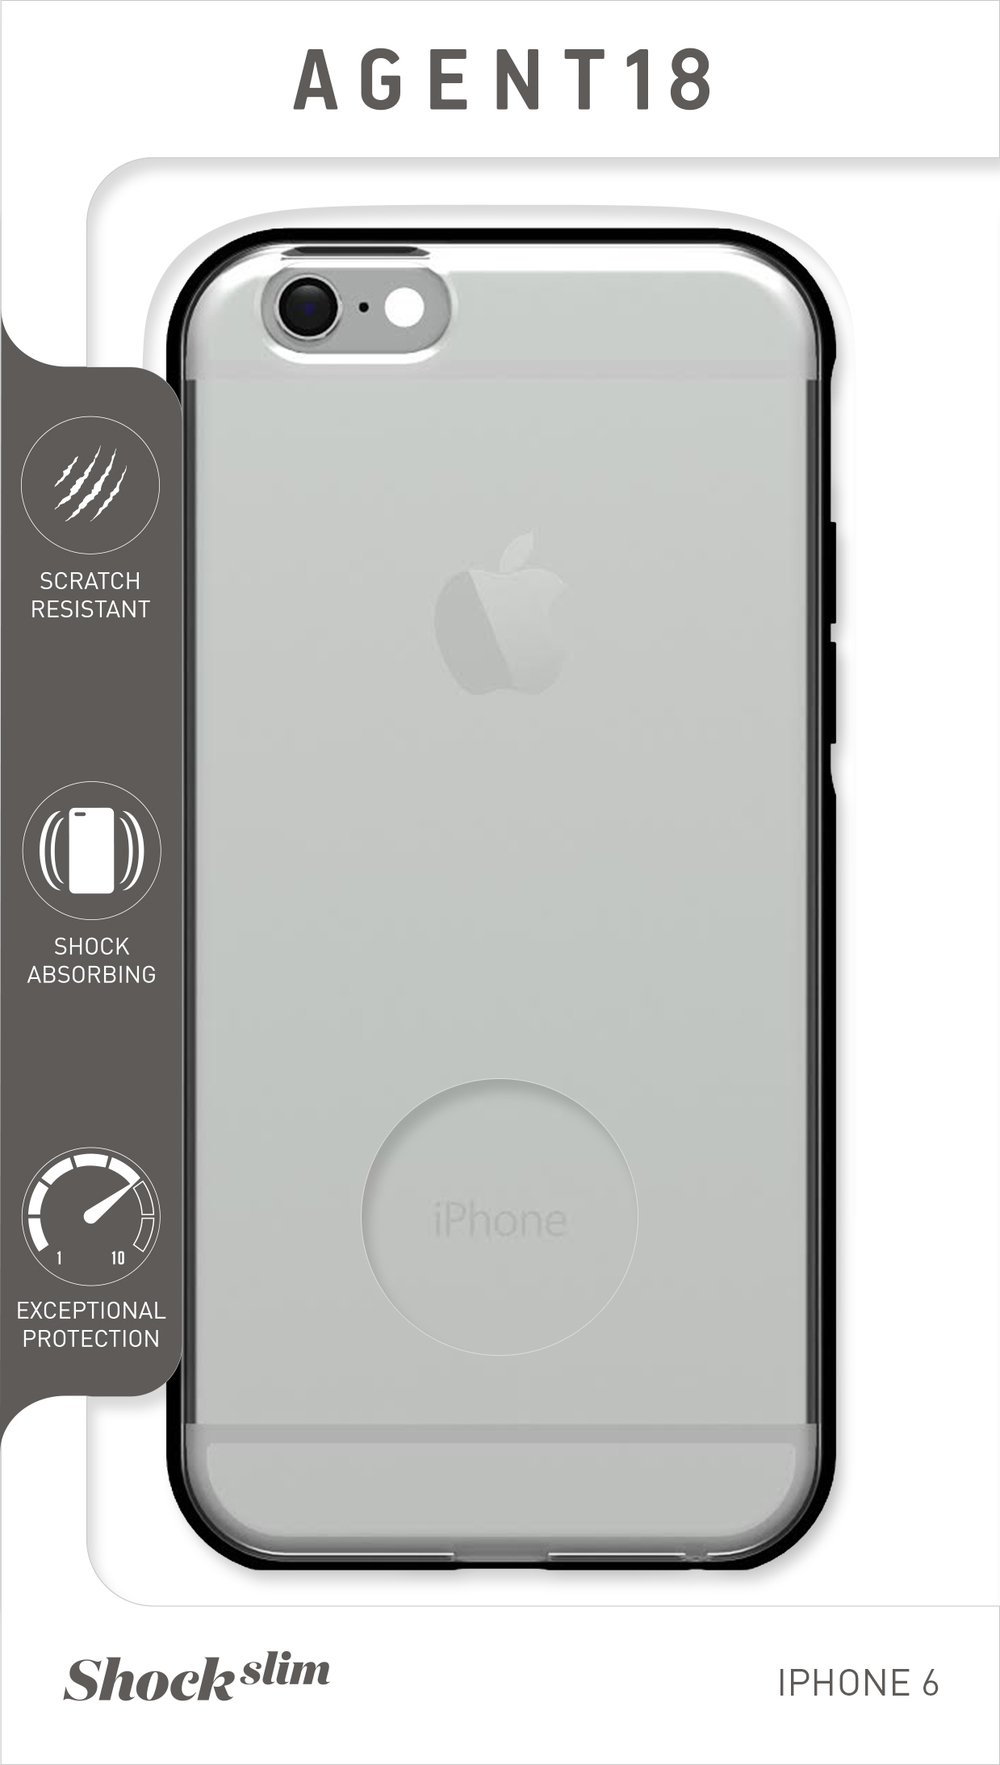 iPhone6-ShockSlim.jpg